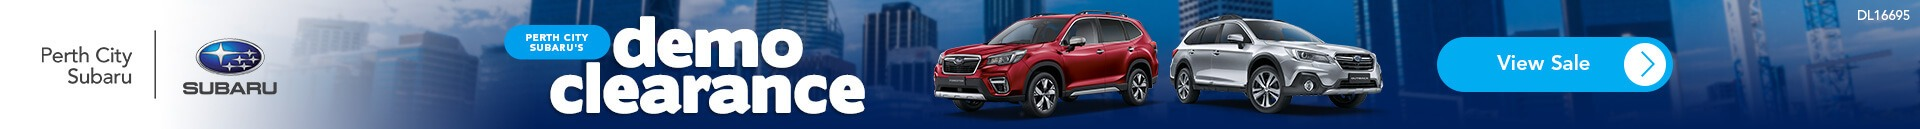 Subaru Forester, An Advance Review of the New Subaru Forester TS